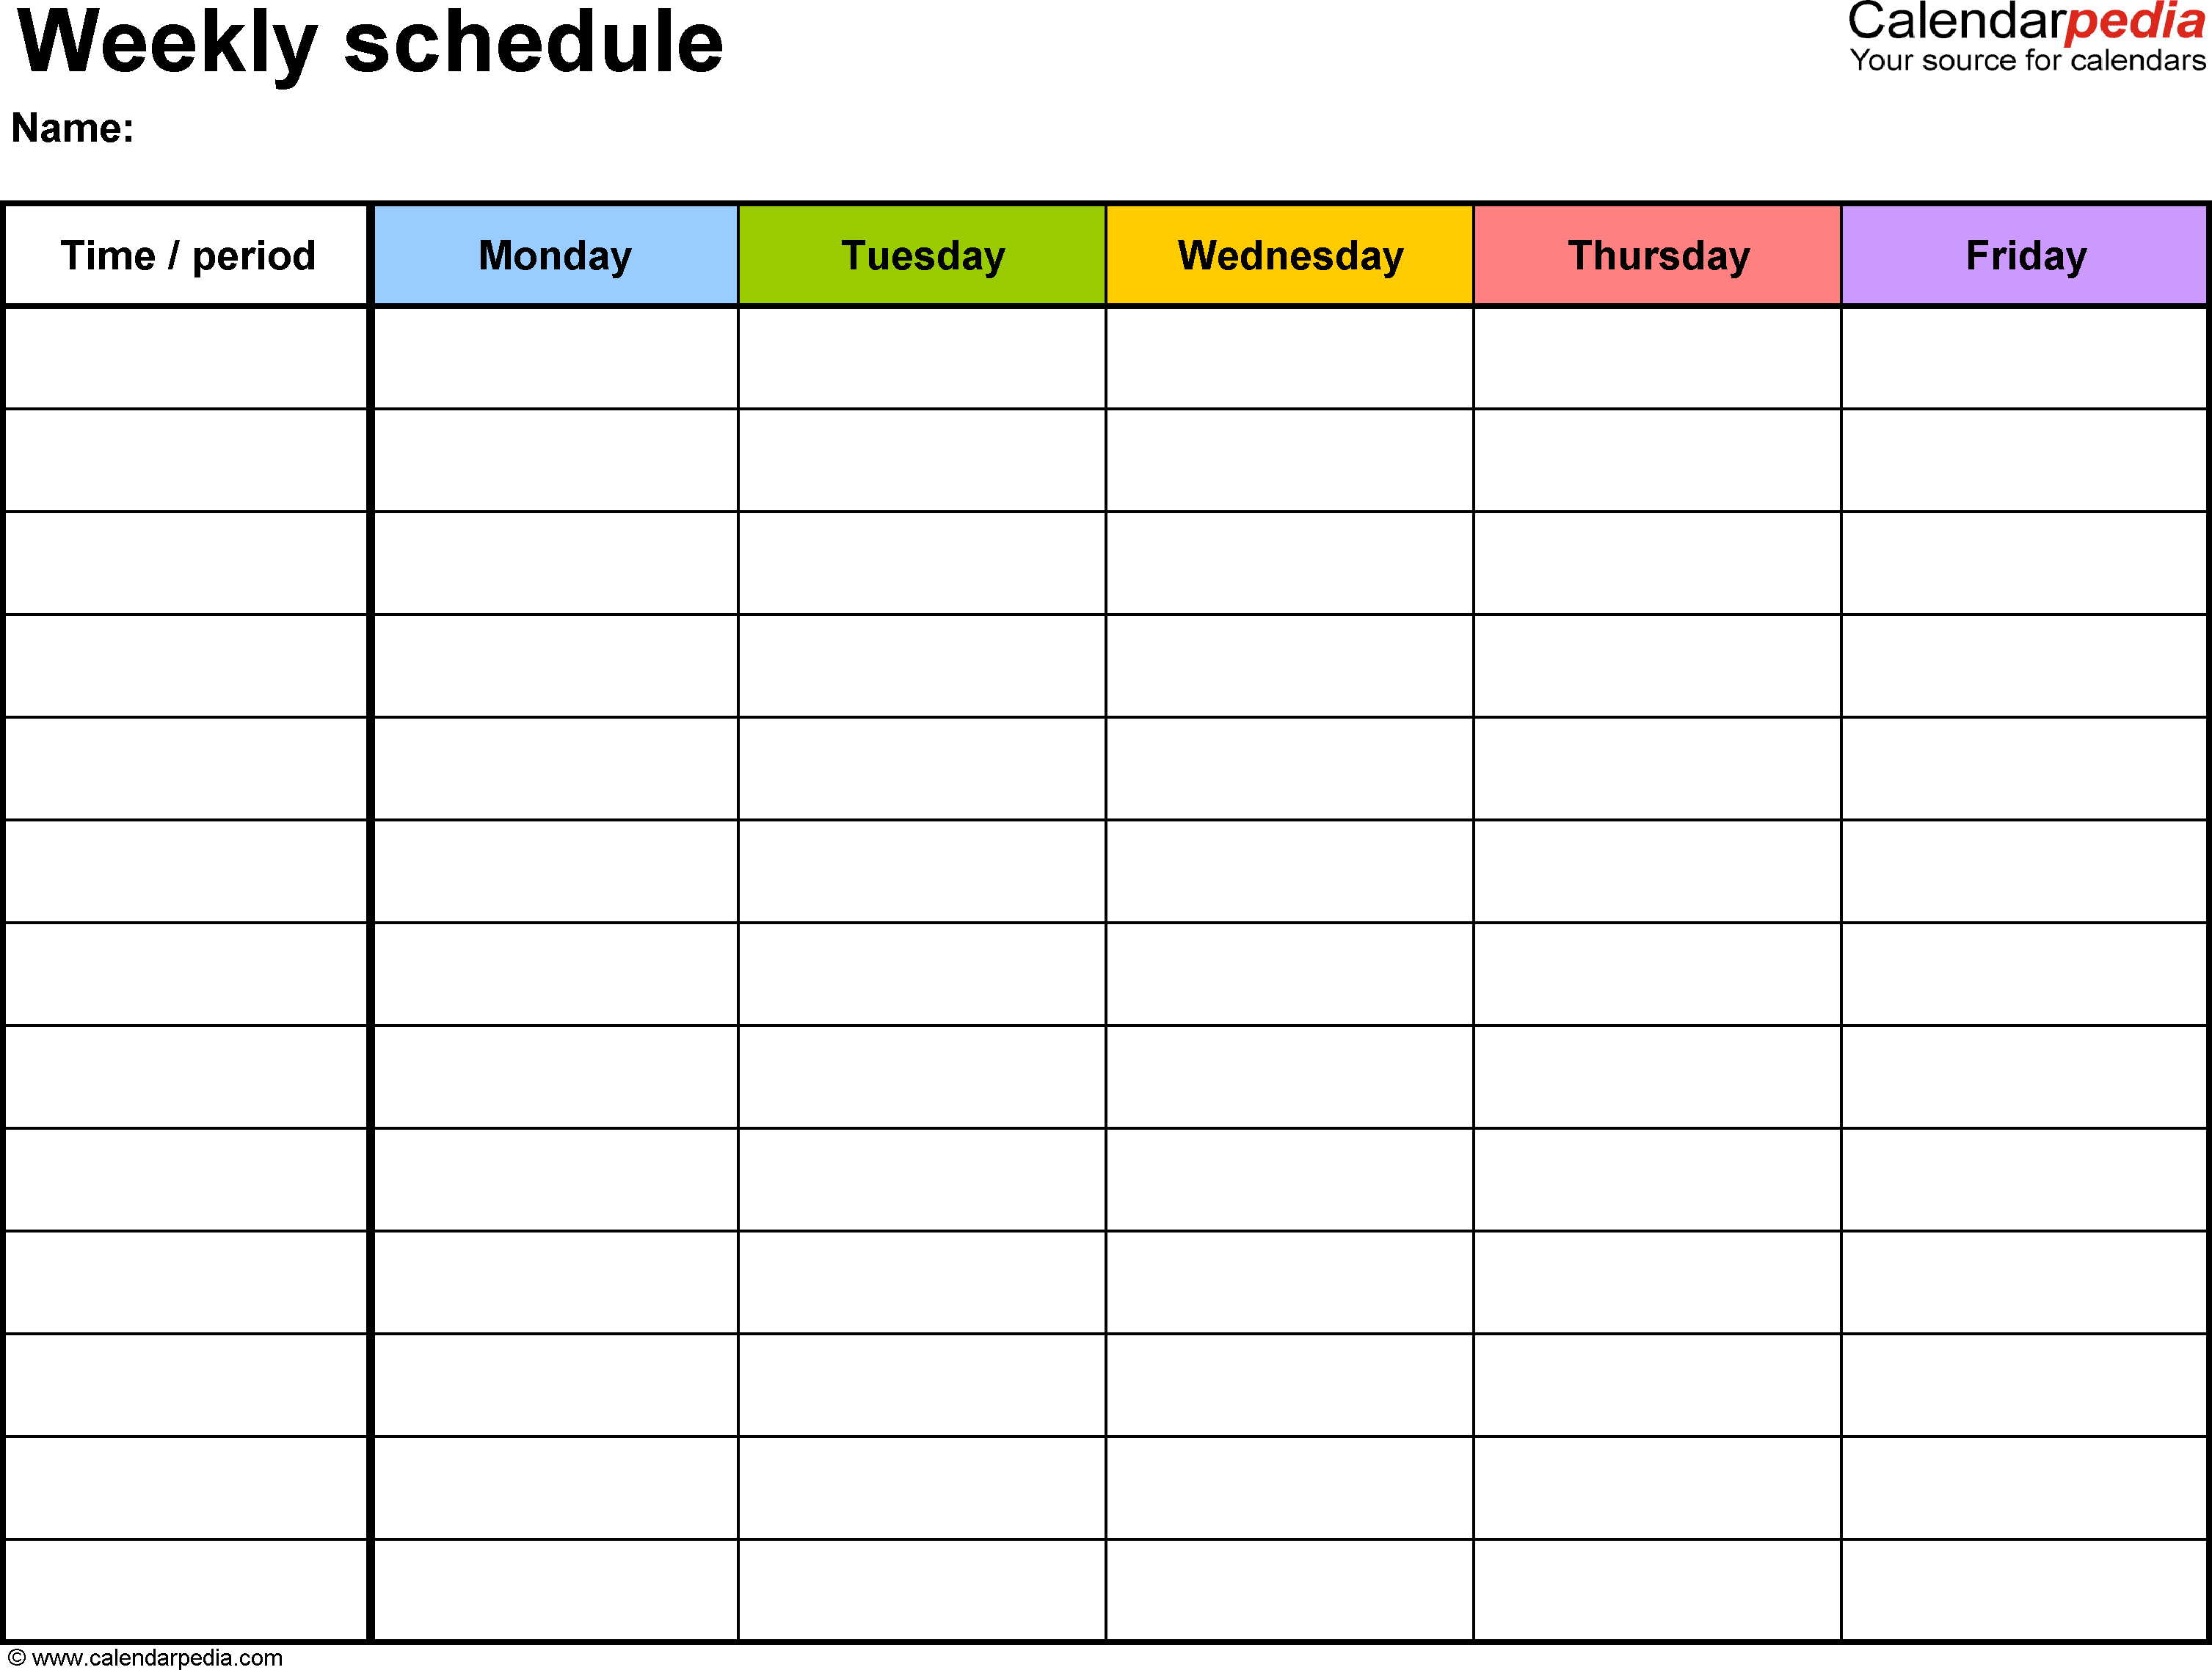 Printable Calendar Monday Through Friday - Tunu.redmini.co